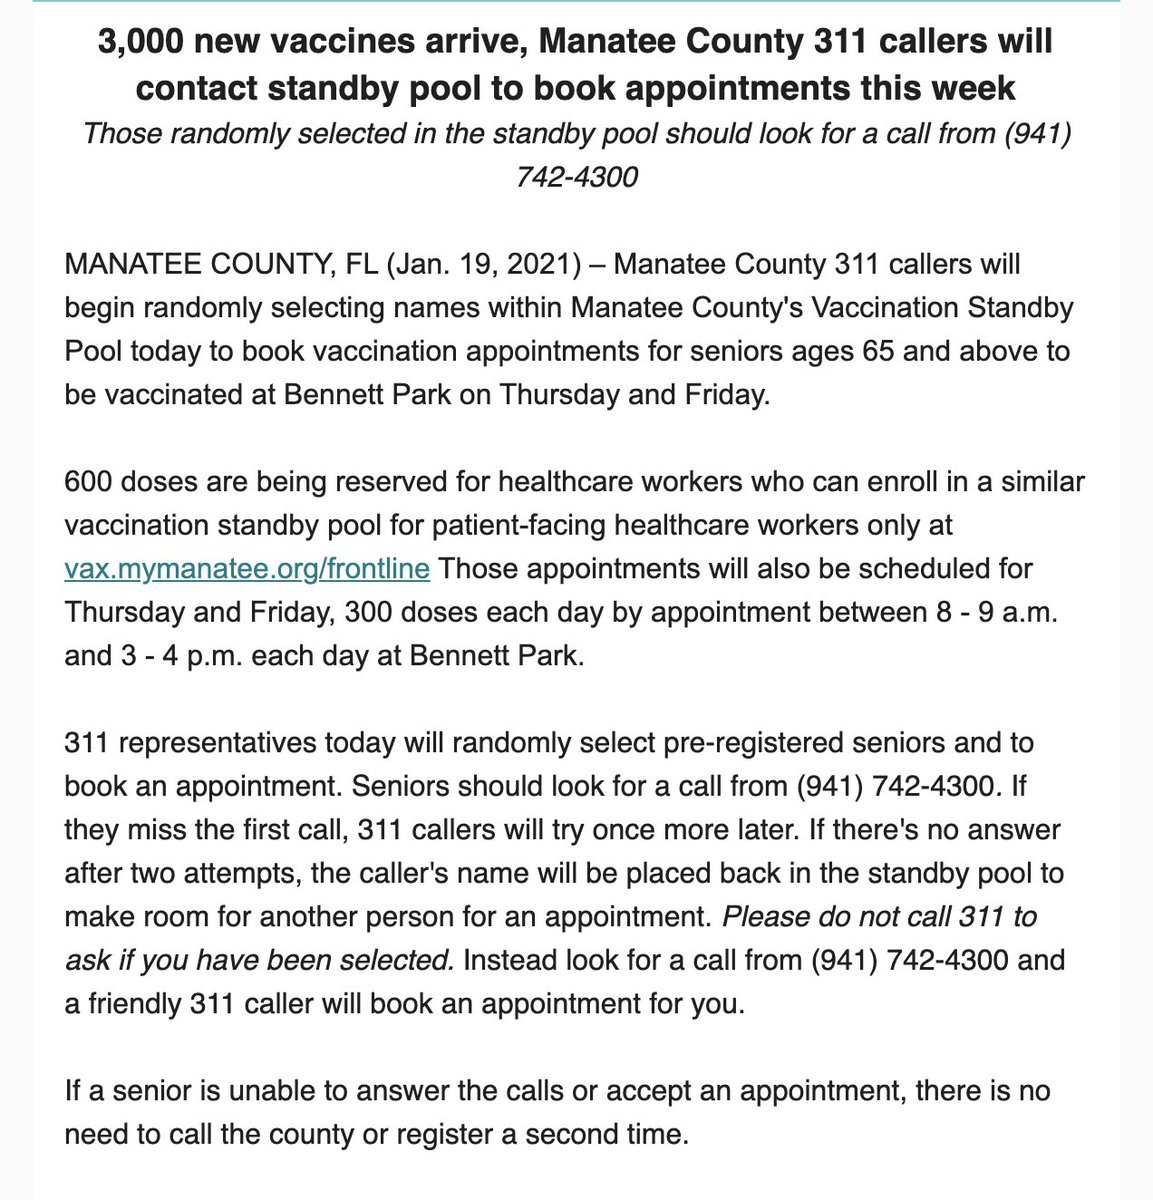 3,000 additional vaccines have arrived in Manatee County. Here's what you need to know.   If you're already in standby pool, you may receive a call from (941) 742-4300 to book an appt for Thurs/Fri. If you're not in the pool, sign up today at https://t.co/juSypIKZrv https://t.co/1cW3VMKUZb